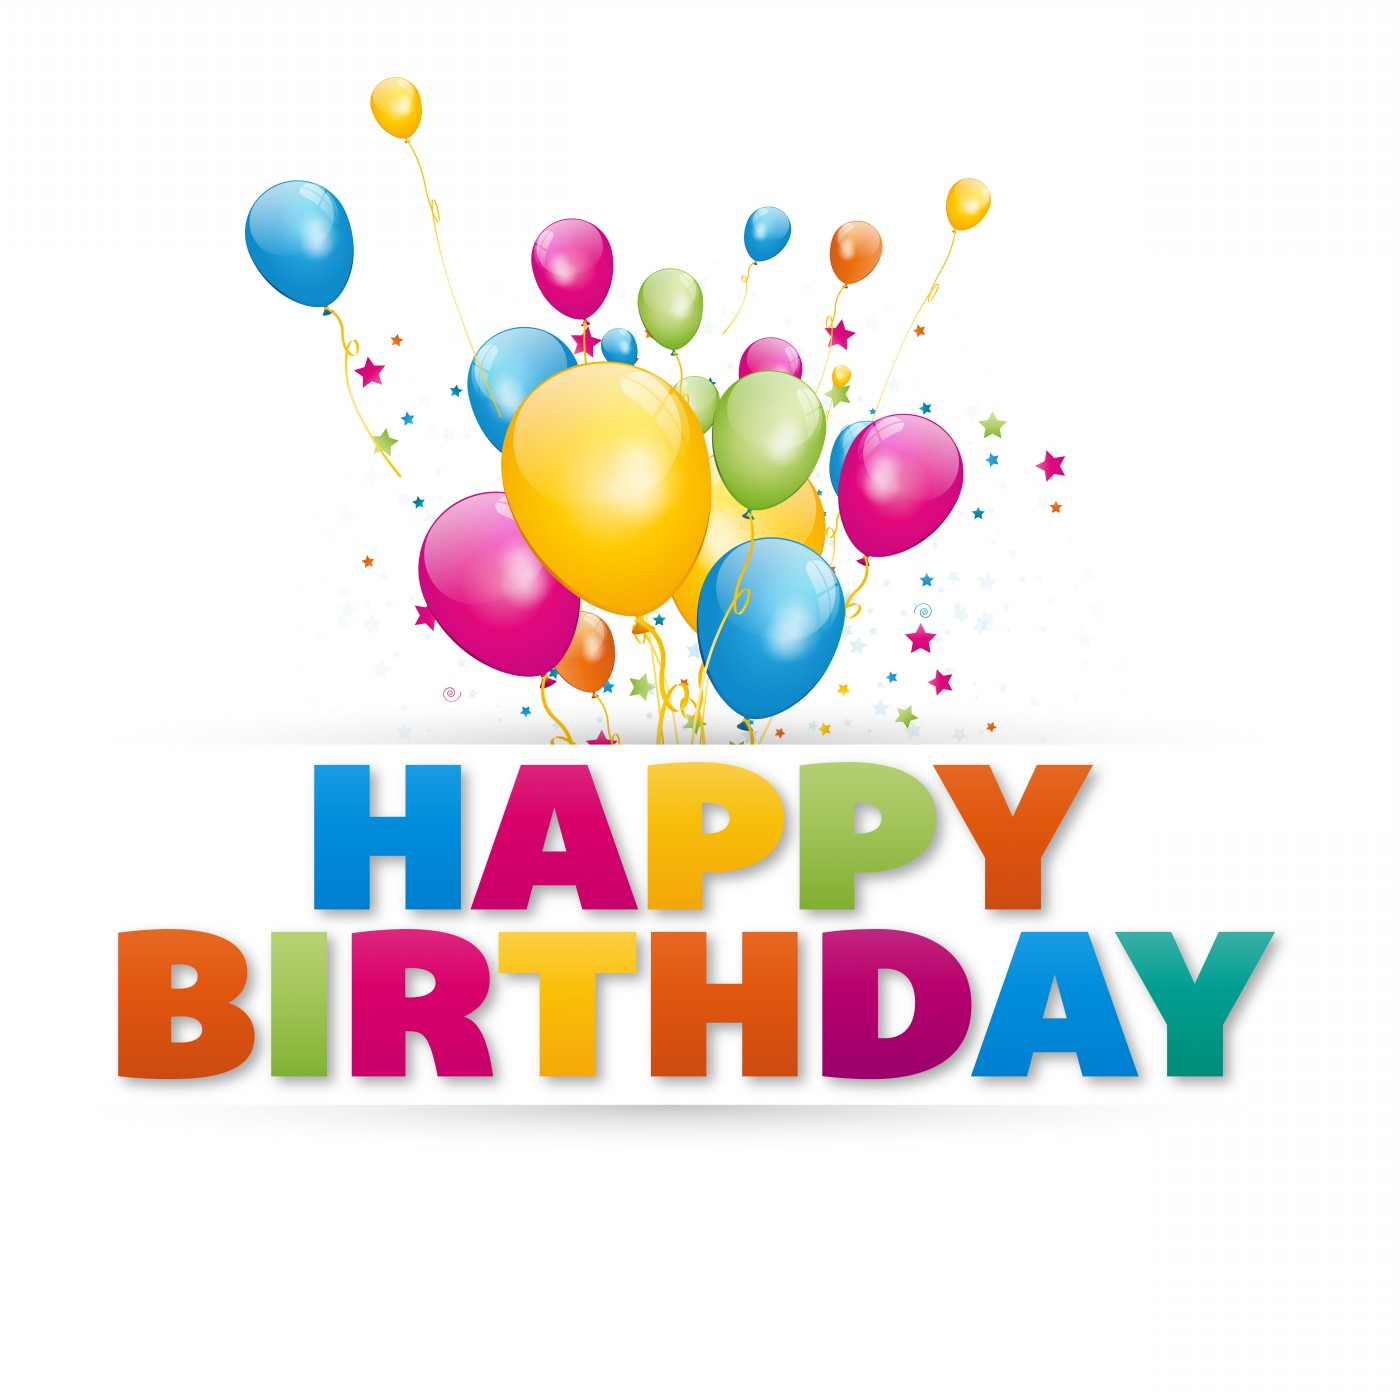 ... Greetings Best Happy Birthday HD Images Free | 9To5Animations.Com